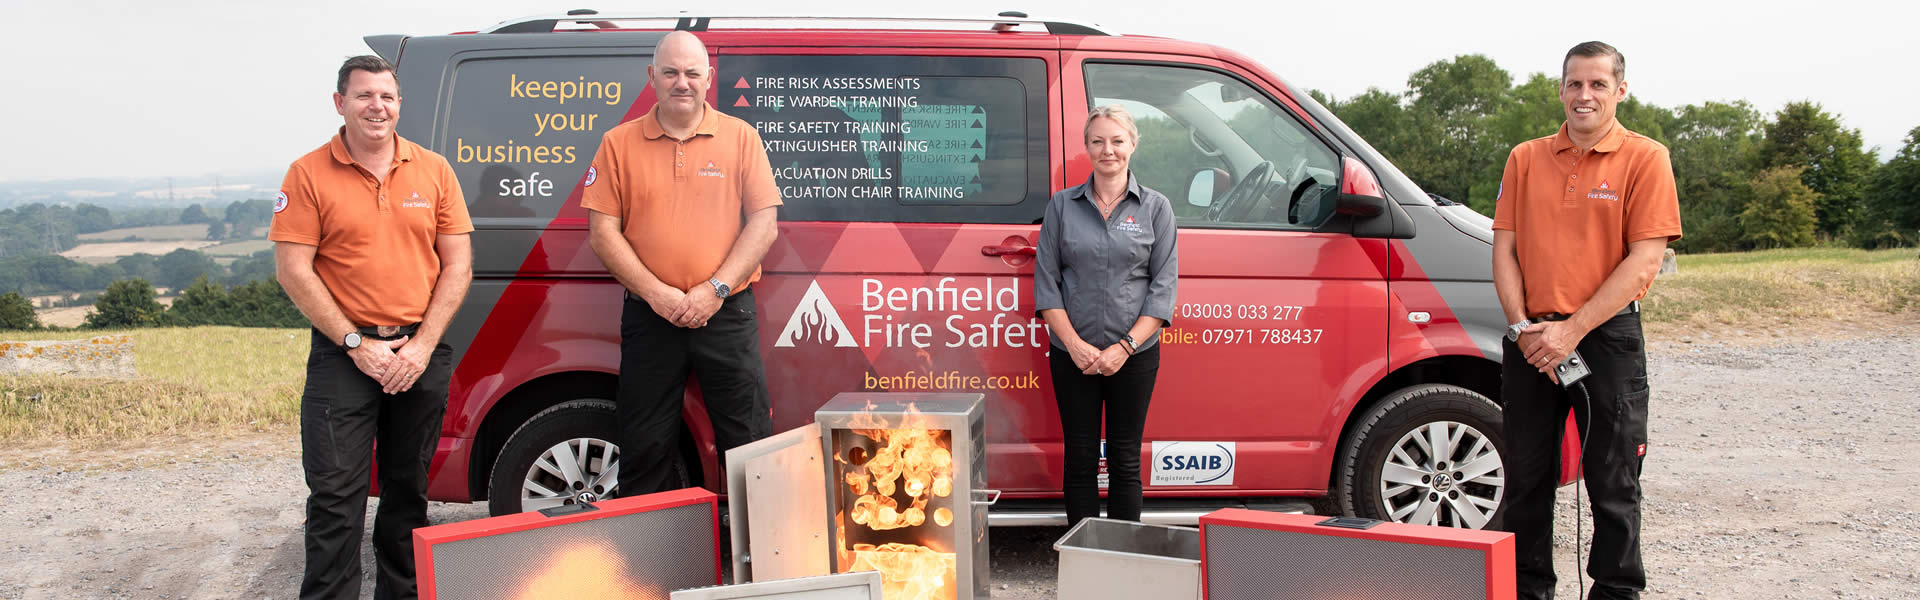 Latest News from Benfield Fire Security